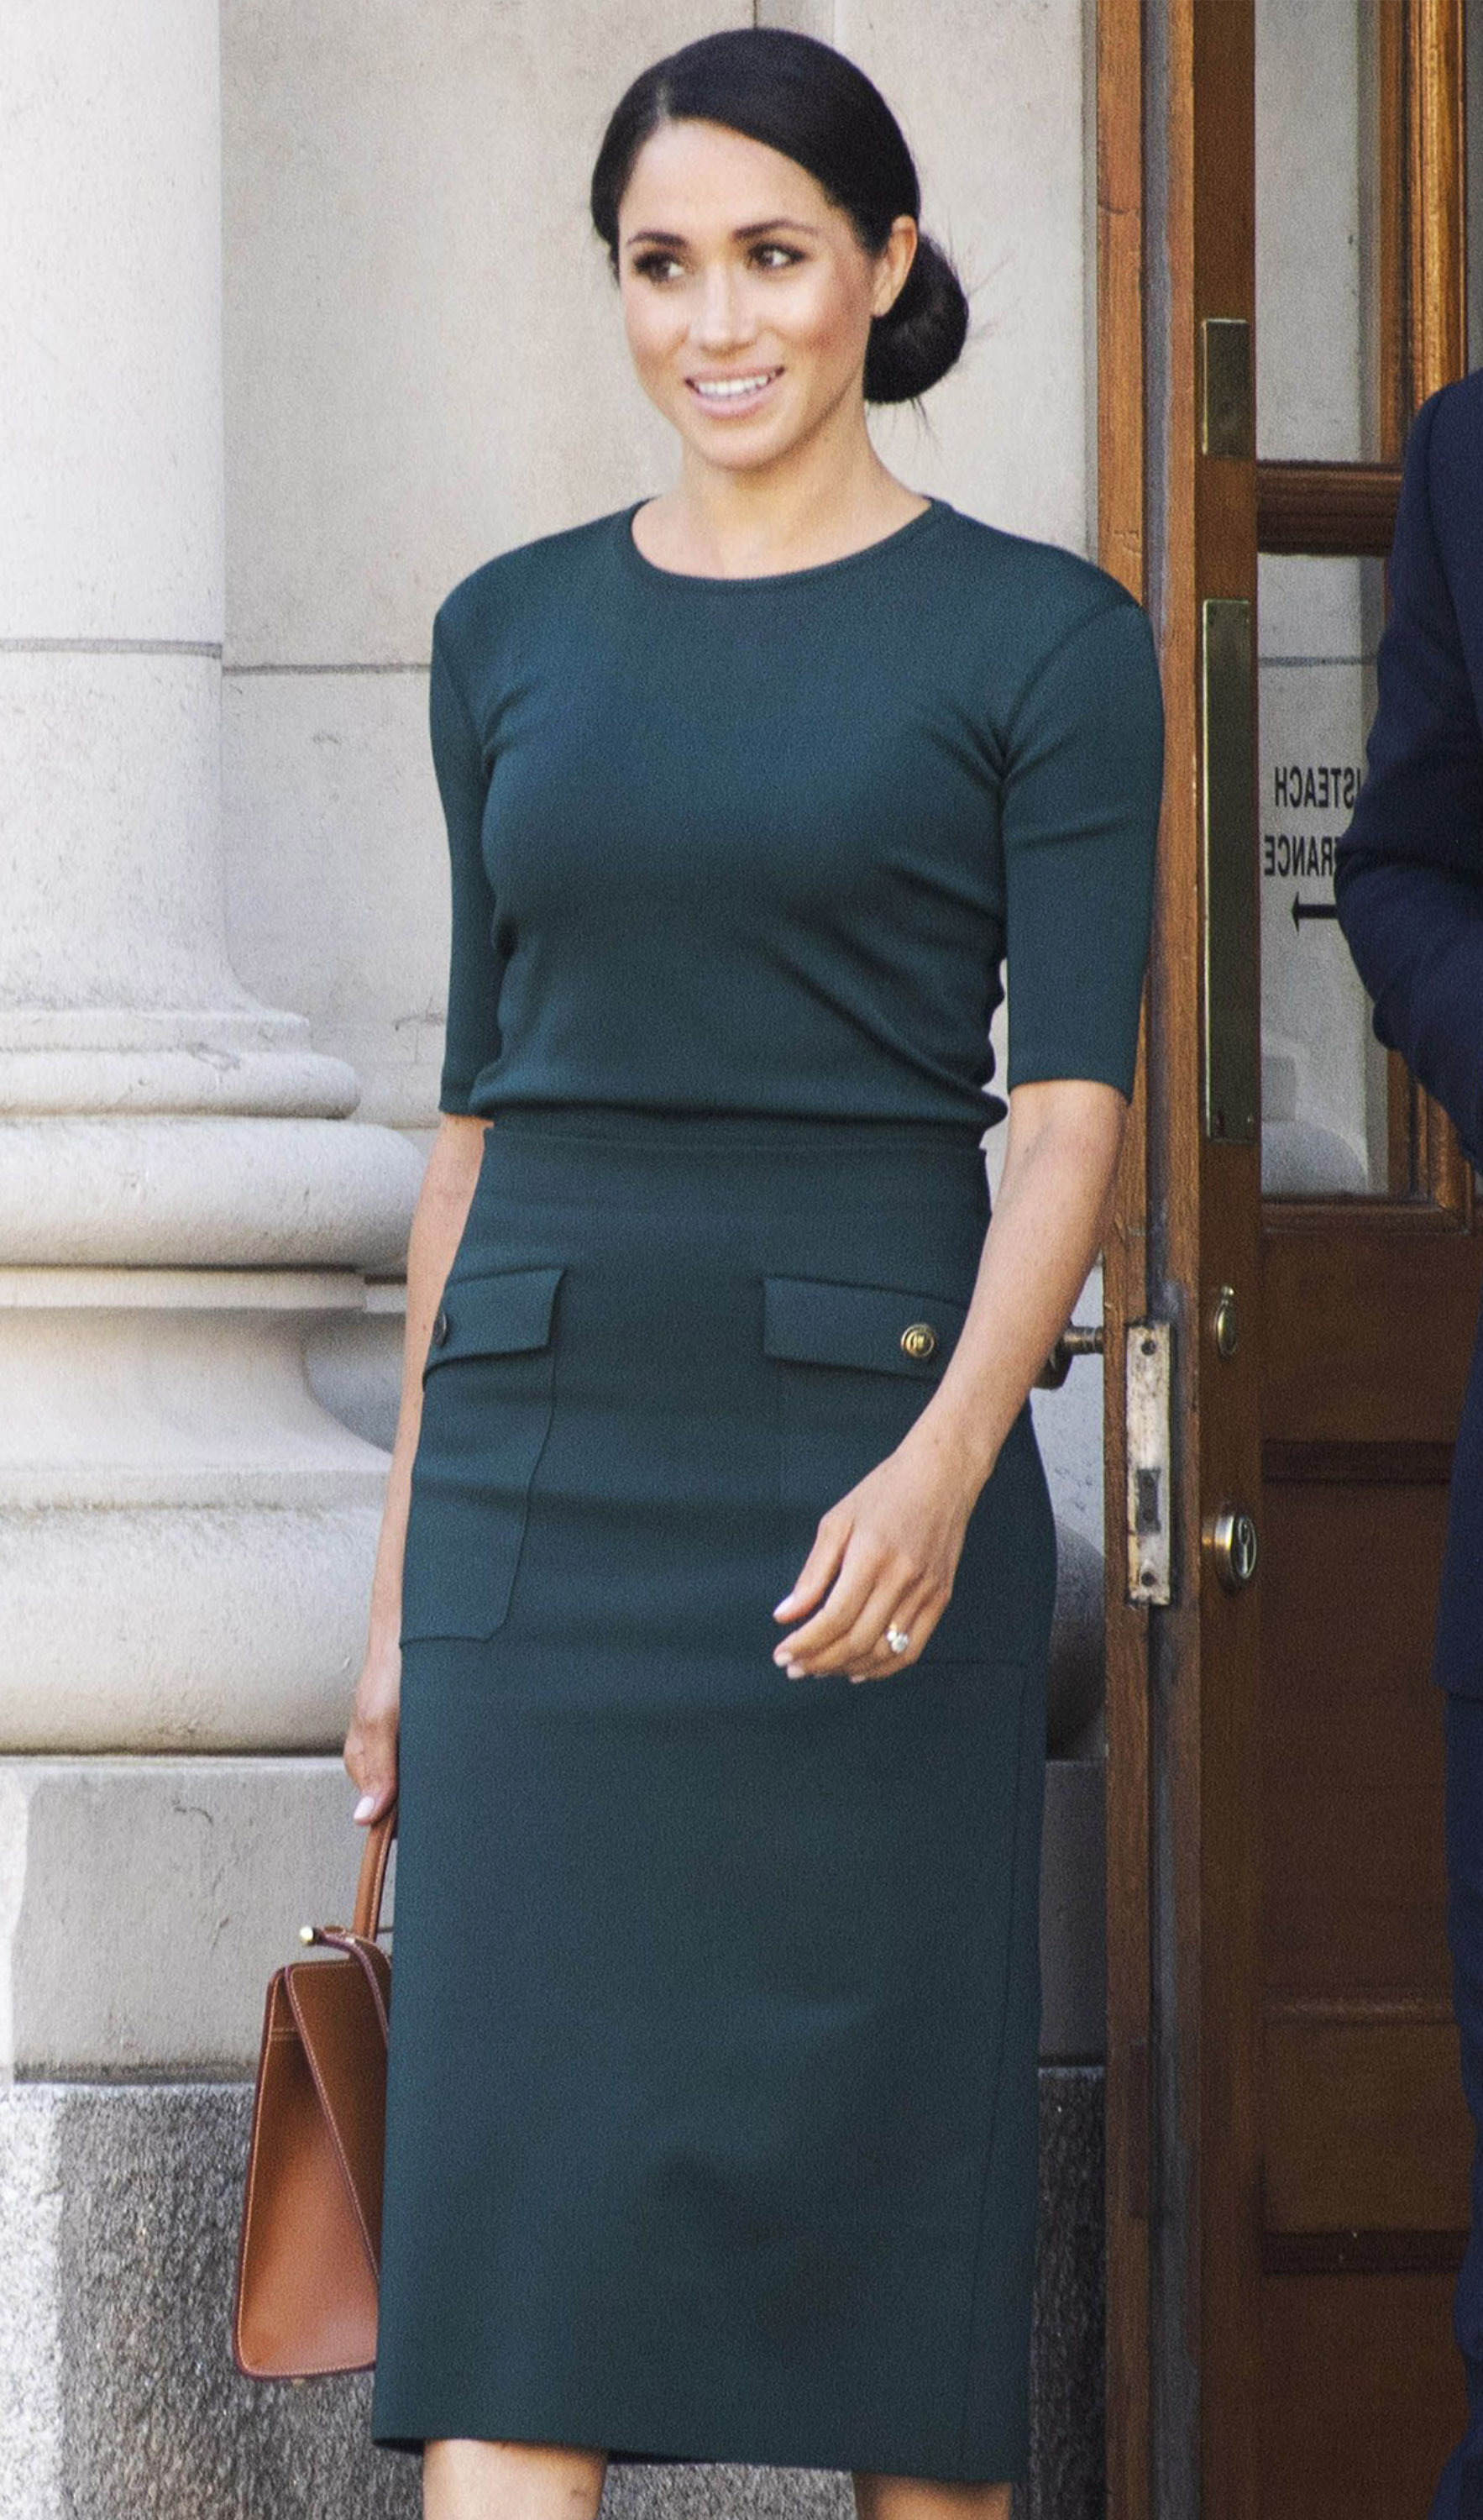 Meghan Markle And Prince Harry Arriving In Dublin As Part Of Their Visit To Ireland